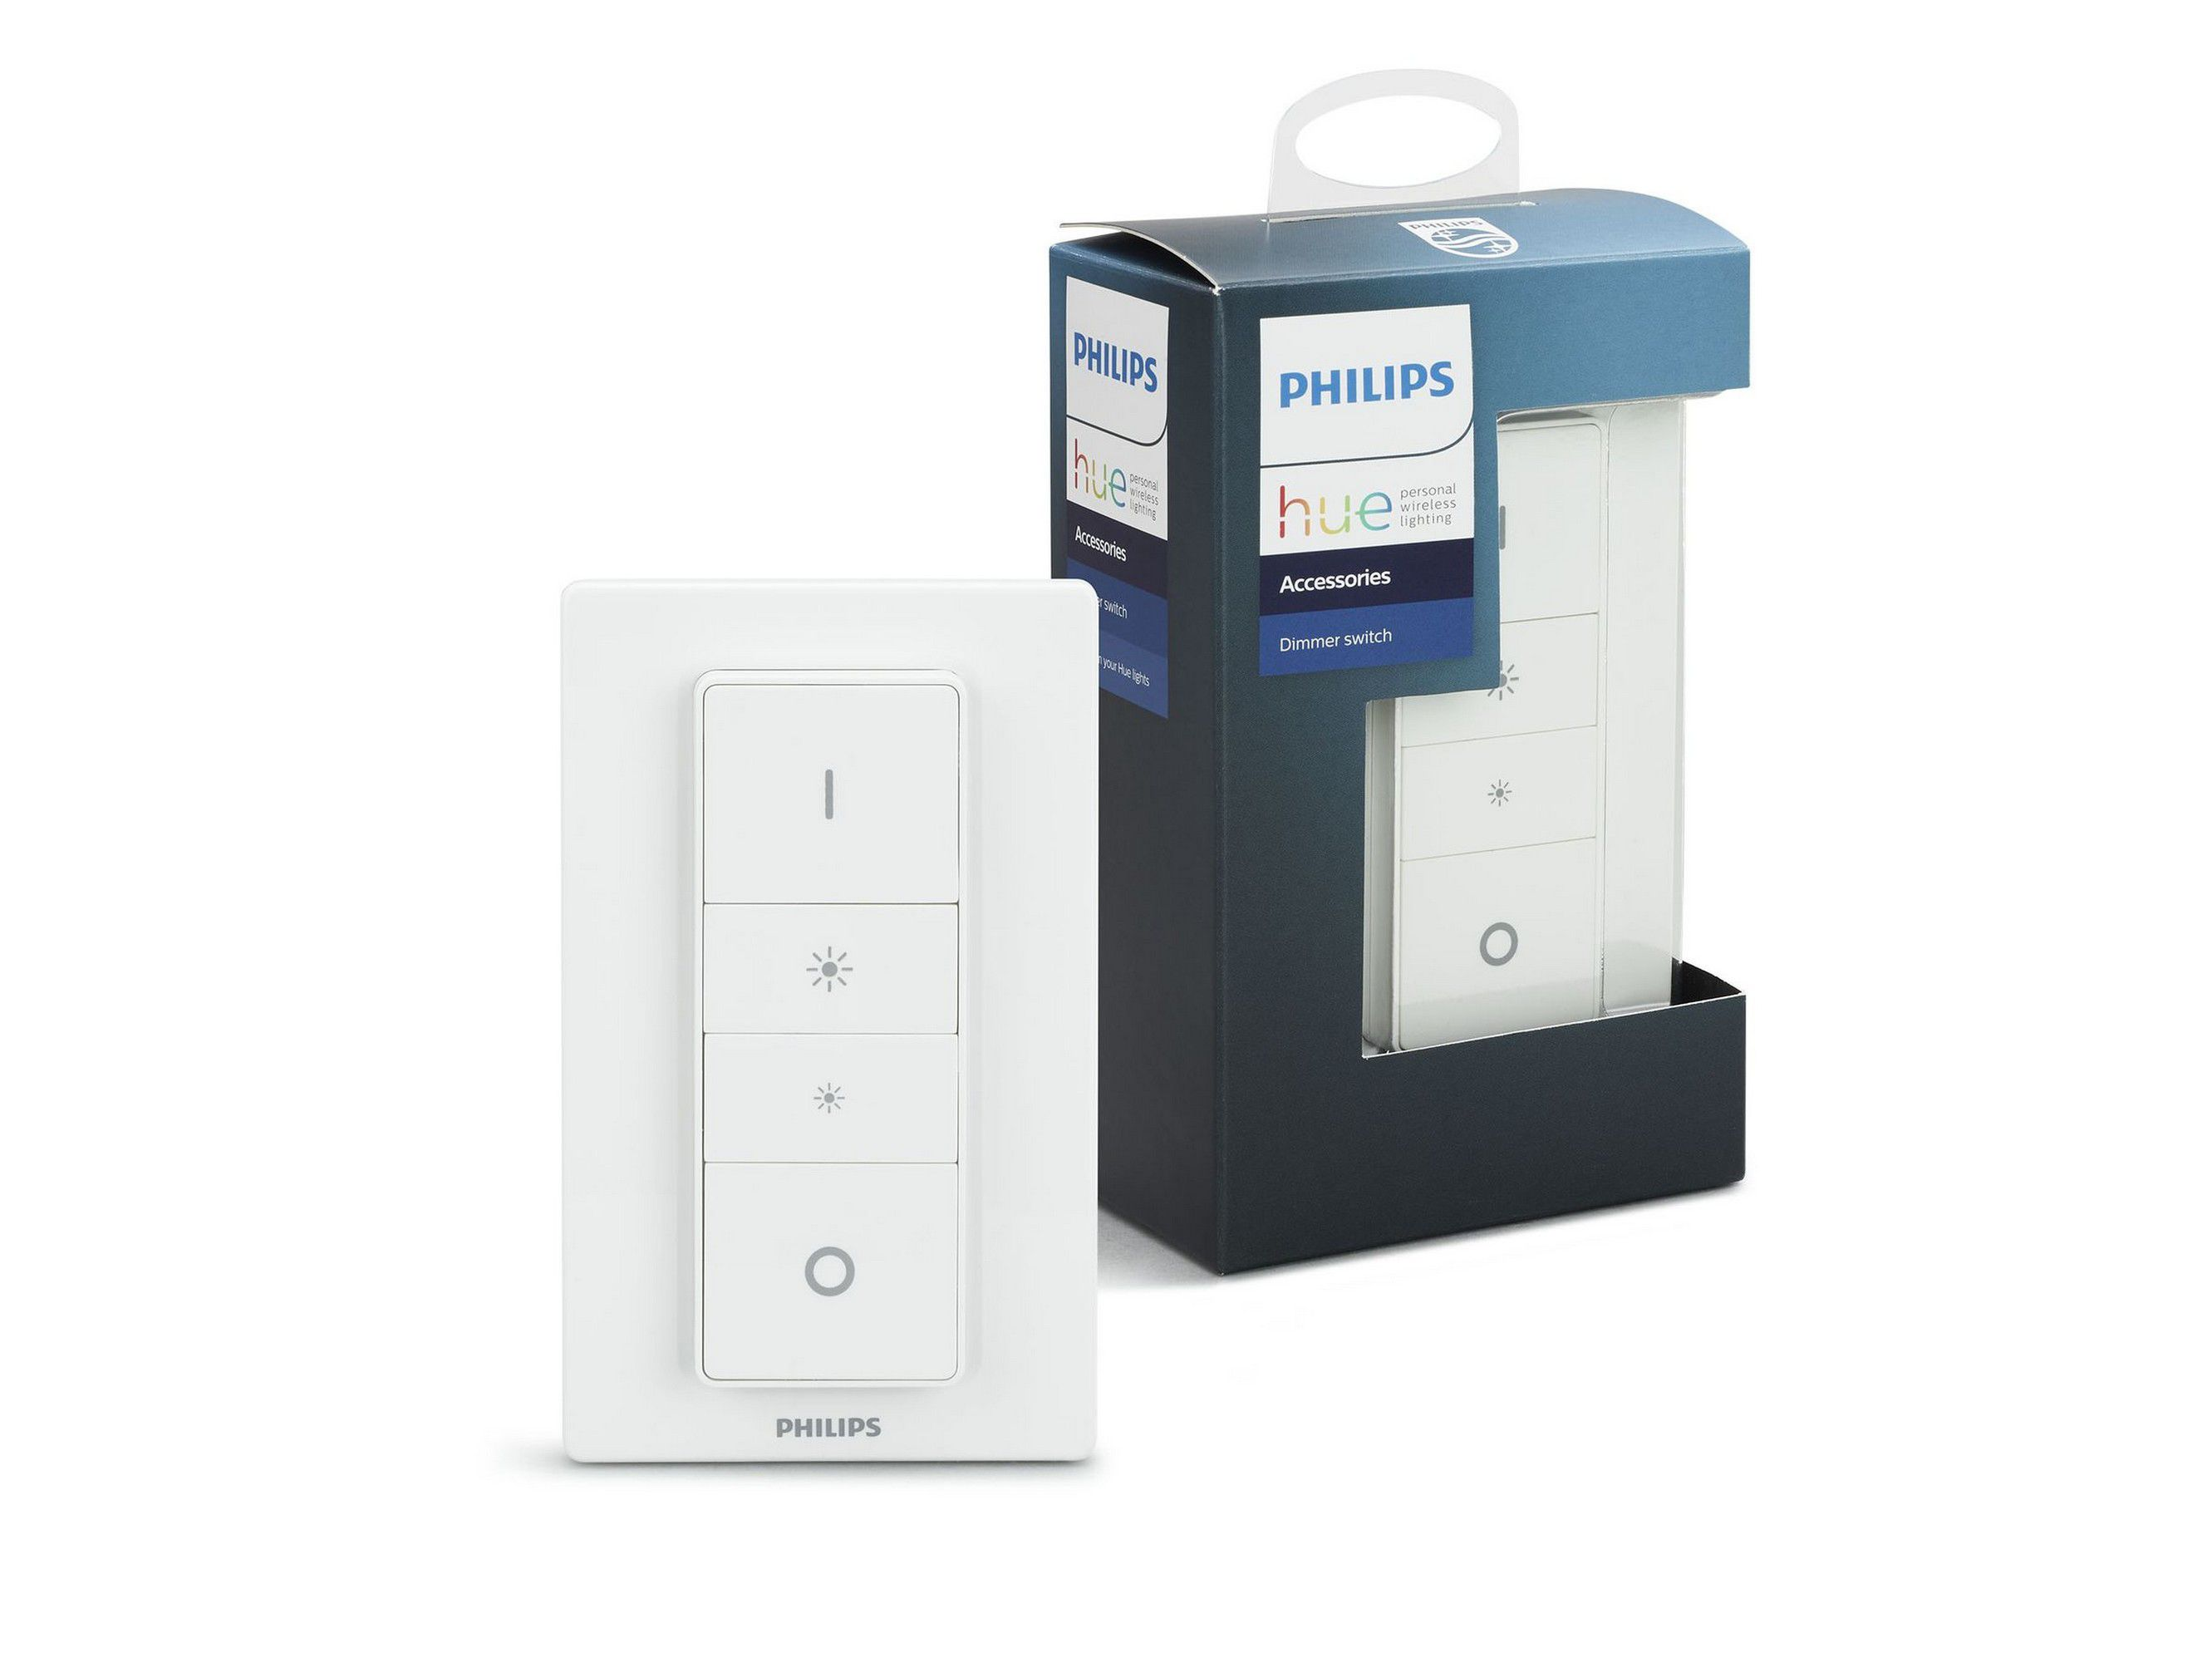 Philips Hue White Dimmer switch